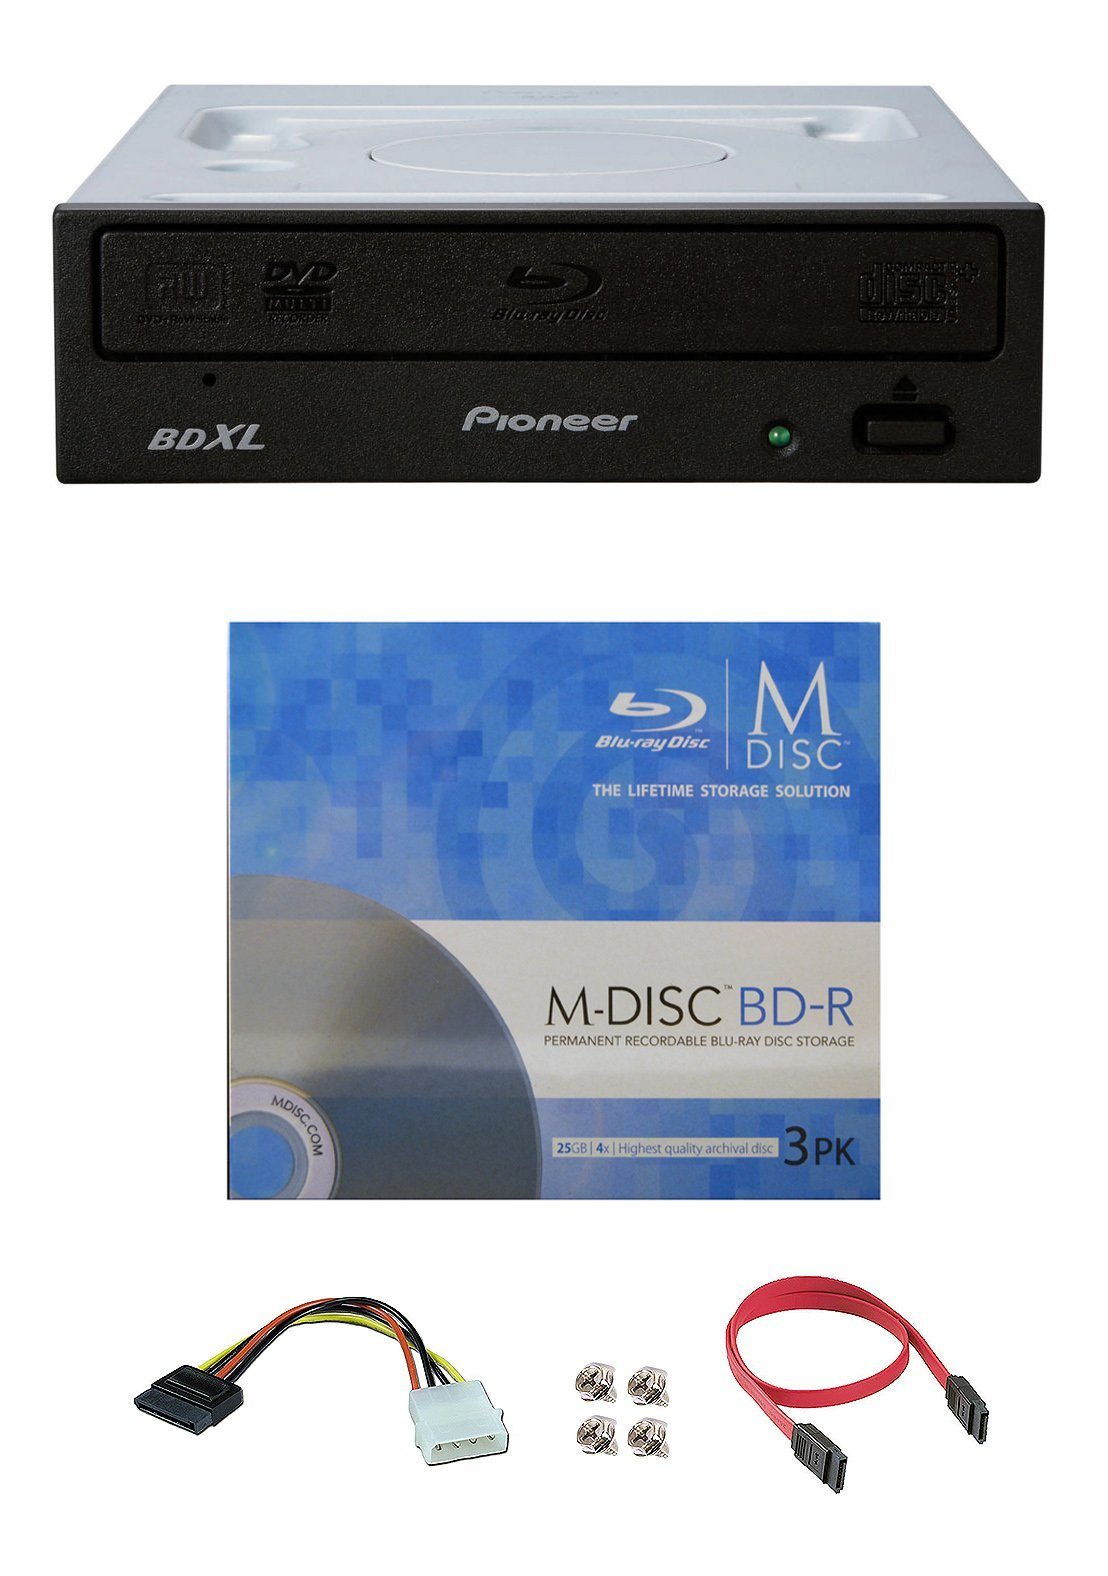 Pioneer 16x BDR-2209 Internal Blu-ray Burner Bundle with 3 Pack M-DISC BD and Cable Accessories (Supports BDXL, SATA Interface)